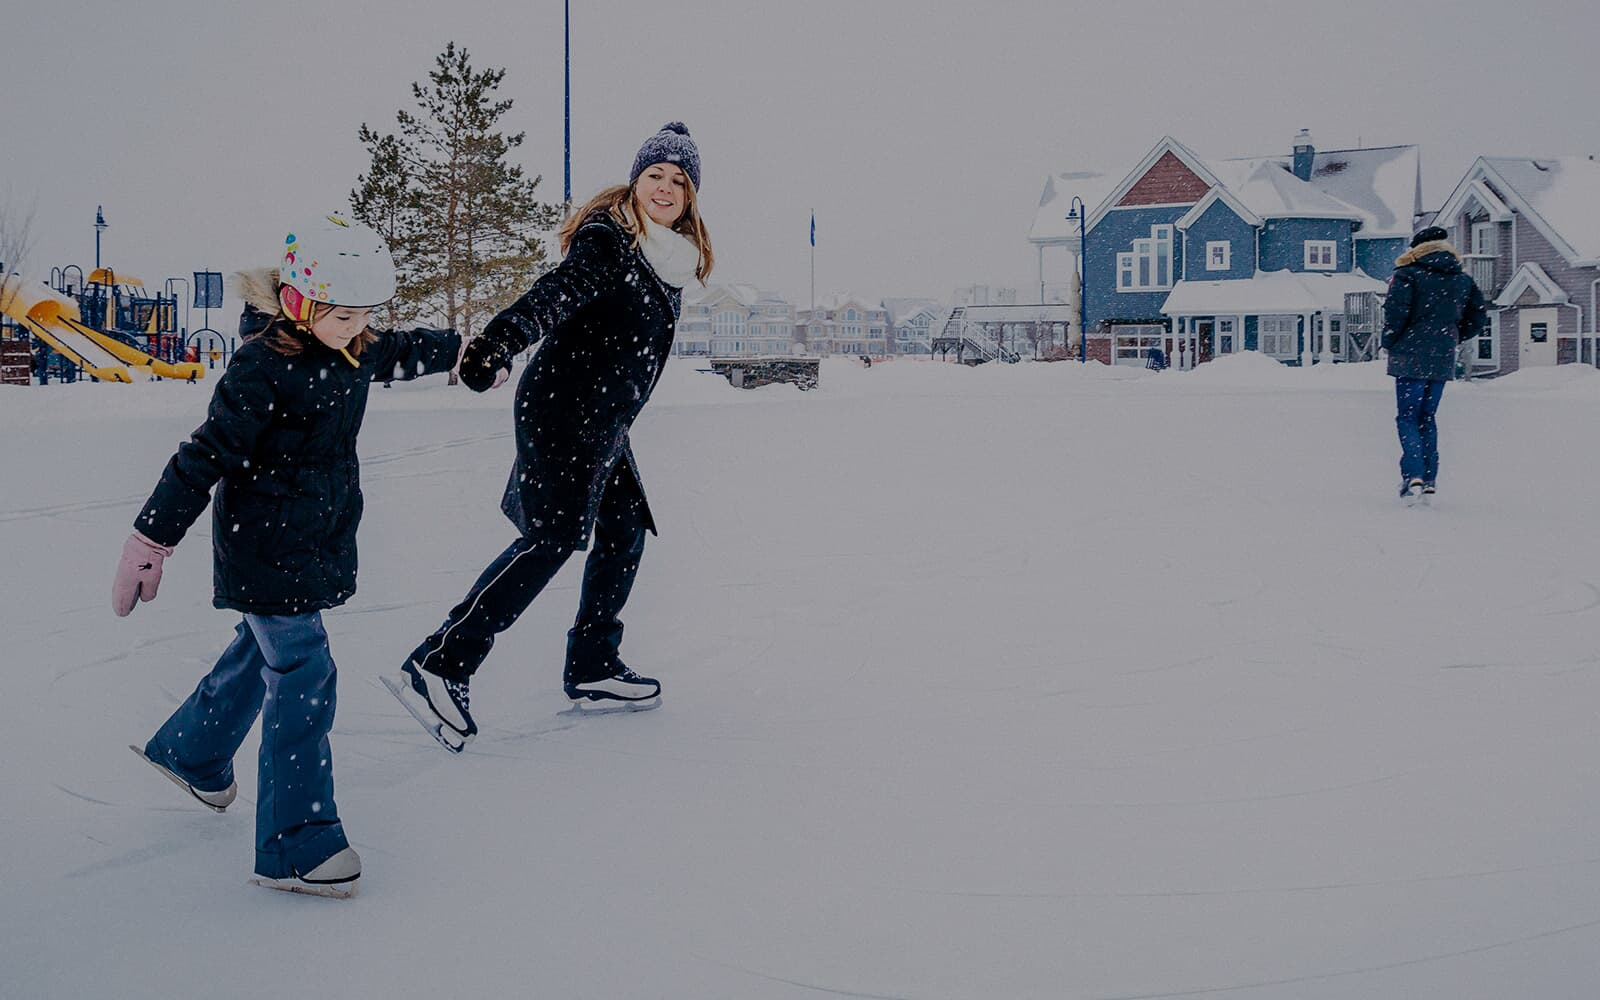 skating-in-lake-summerside-edmonton-alberta